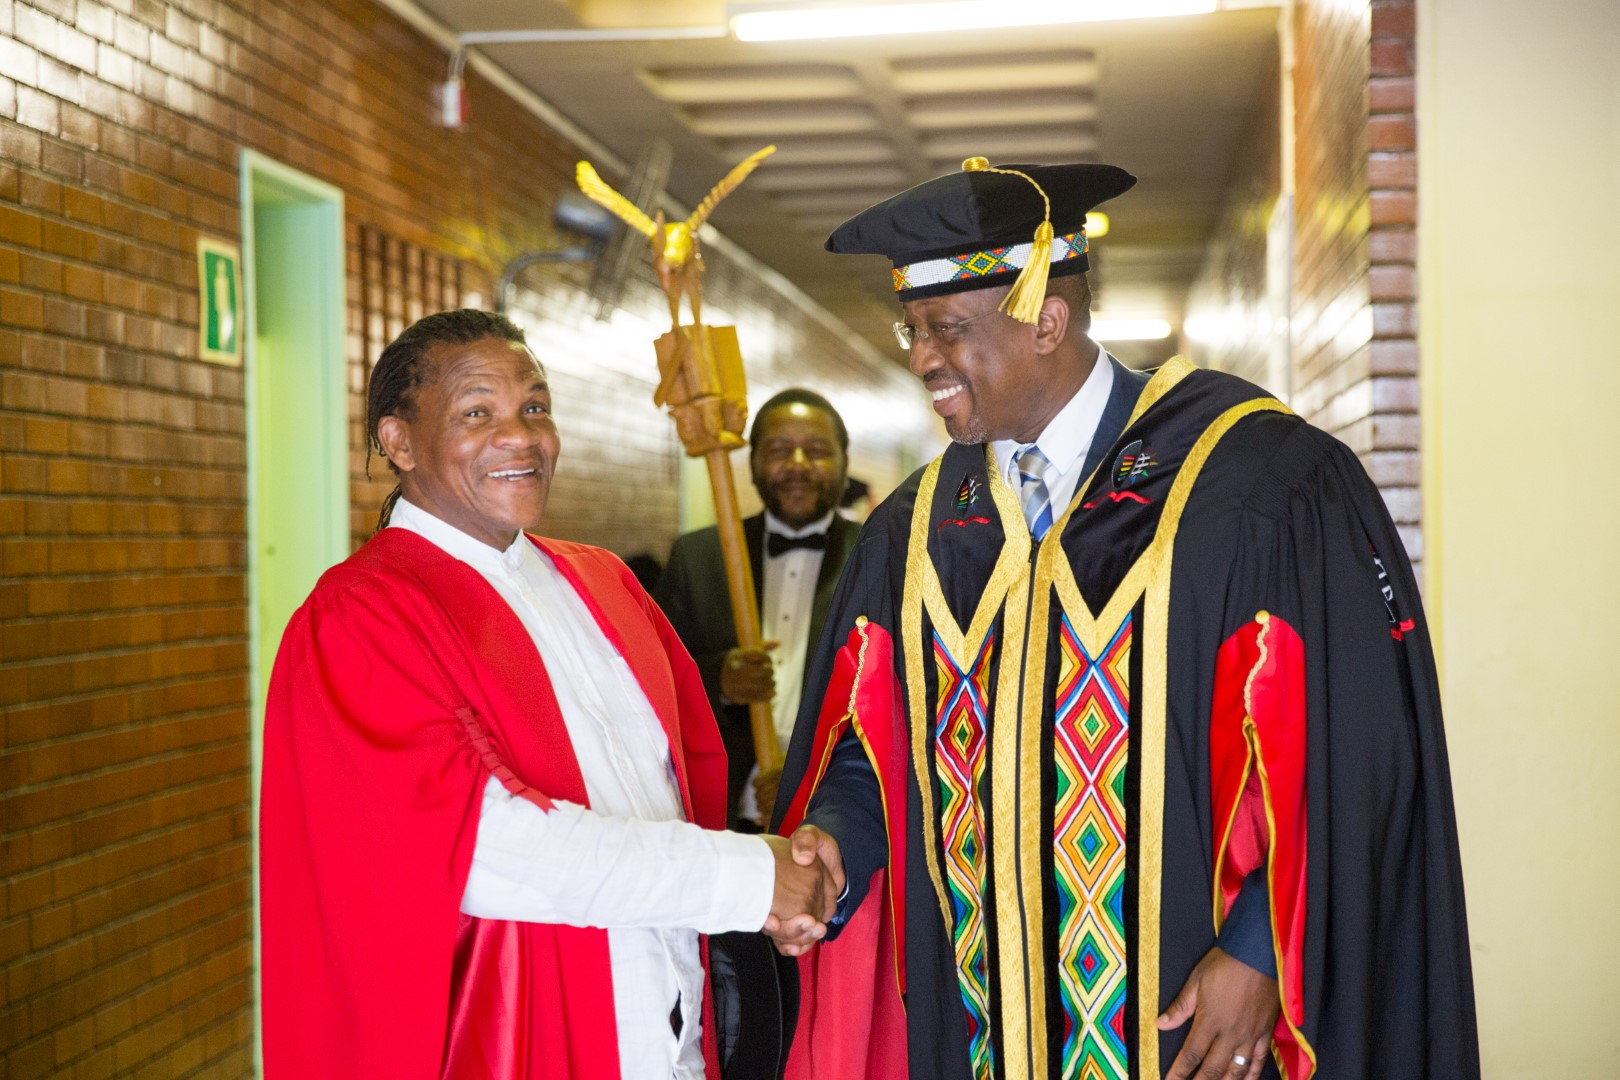 Honorary Graduate Dr Willie Bester shares a lighthearted moment with UKZN Acting VC Prof Nana Poku